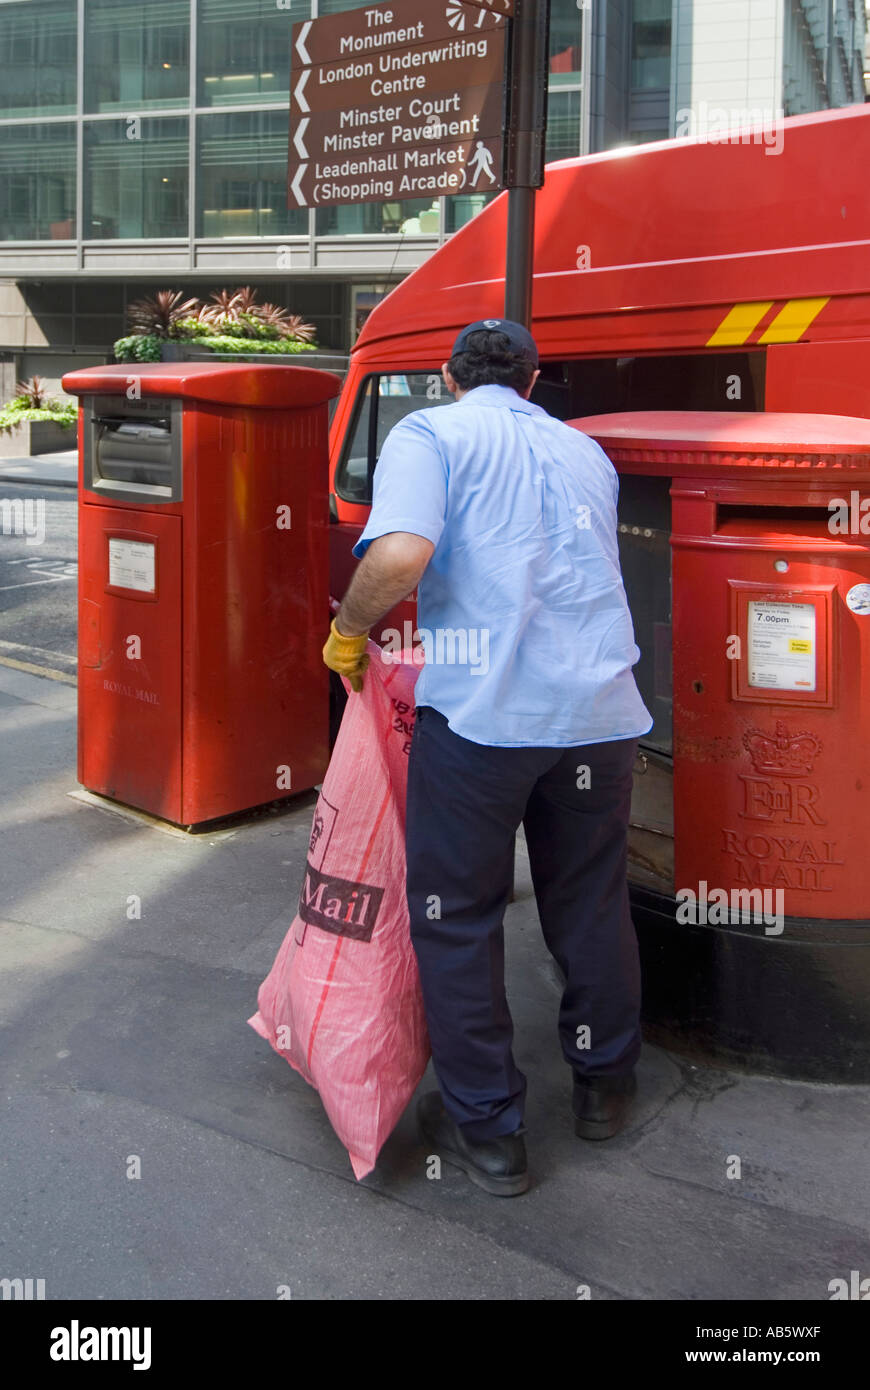 City of London postman emptying mail box - Stock Image